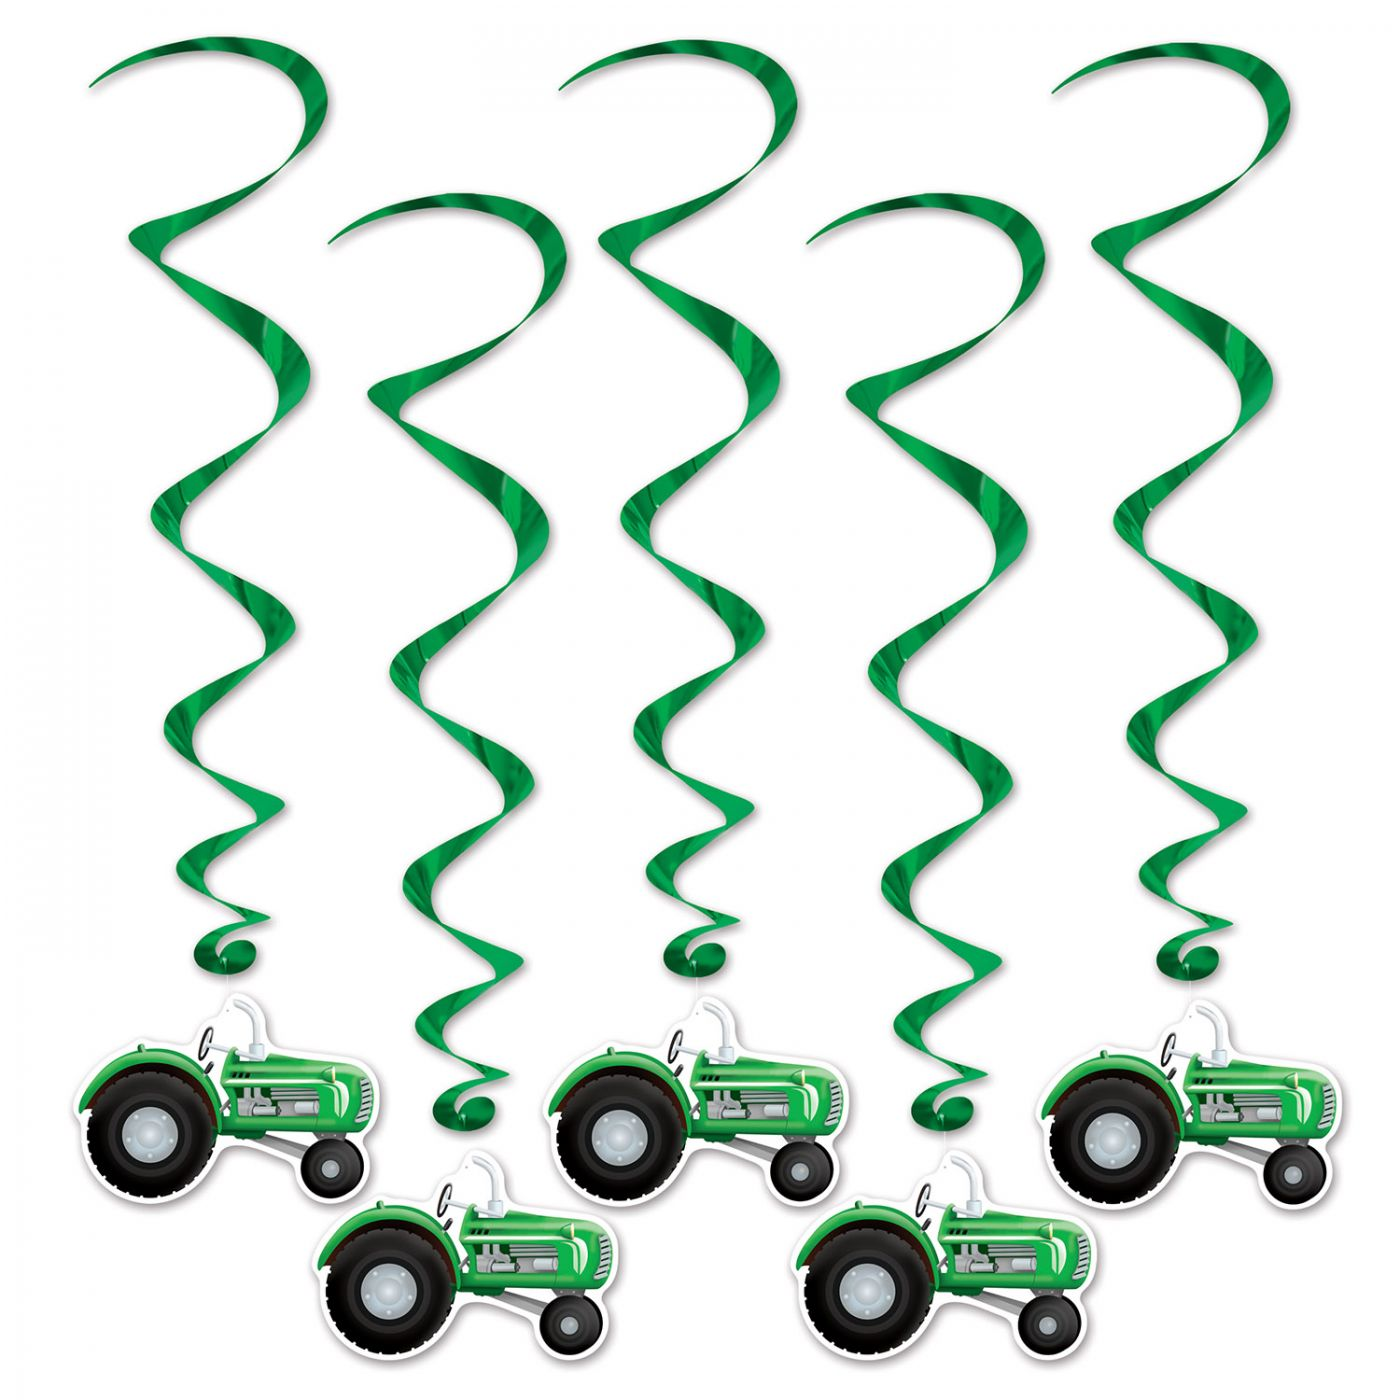 Tractor Whirls (6) image